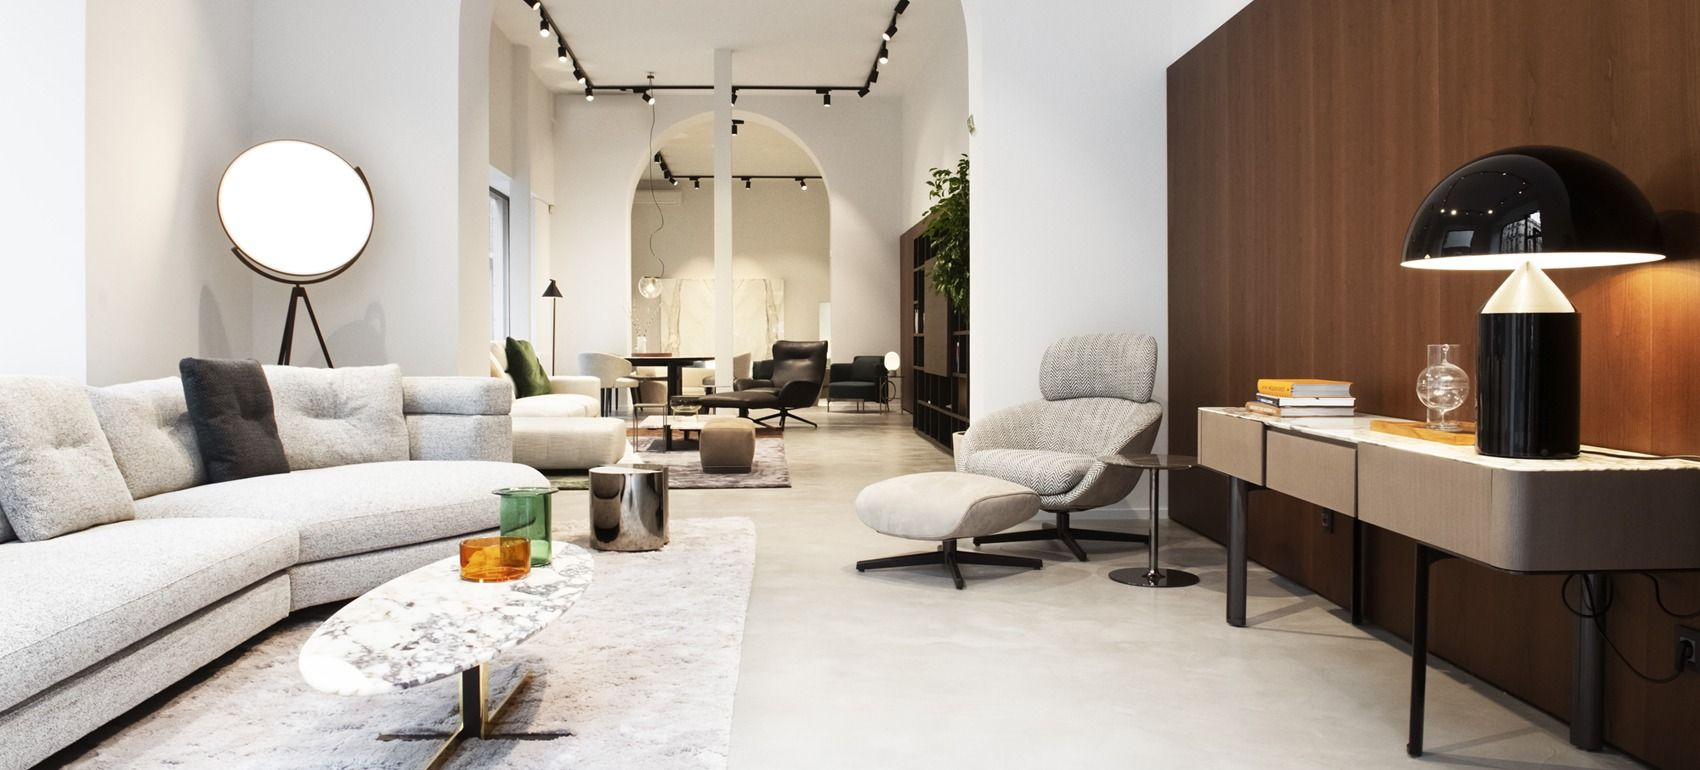 Mobilier Design Marseille Minotti Magasin Meuble Contemporain Sil Mobilier Design Meuble Contemporain Boutique Deco